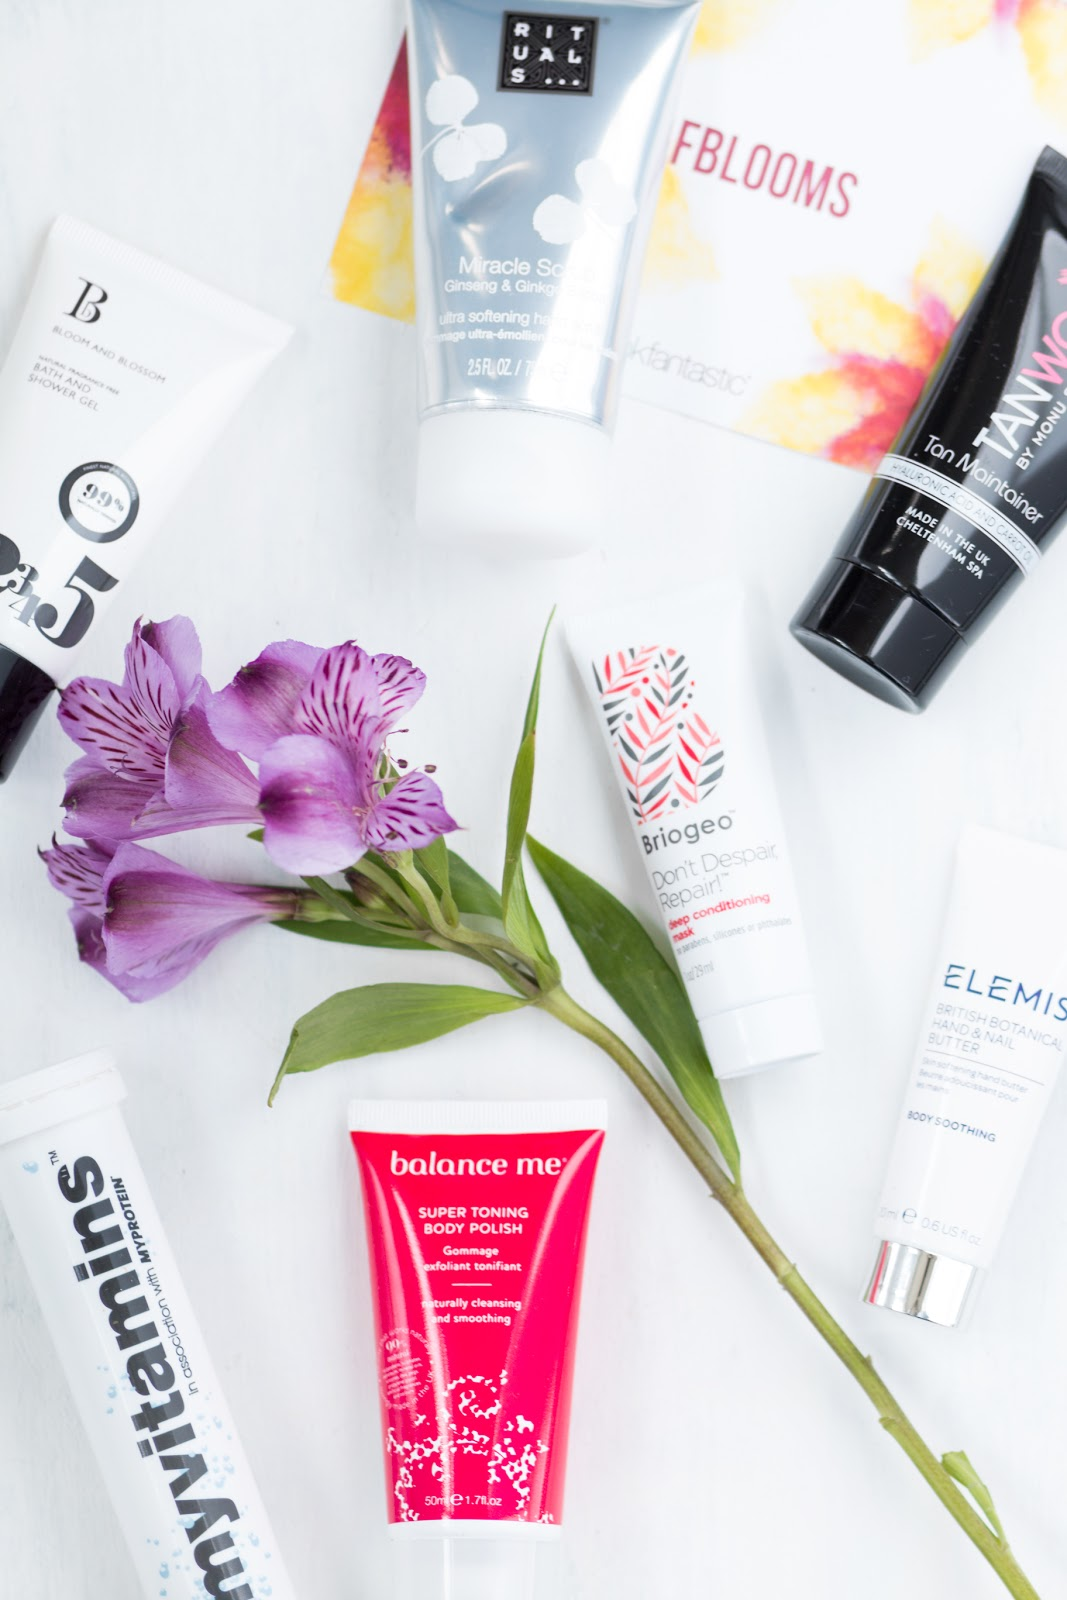 WHAT'S IN APRIL'S BEAUTY BOXES?